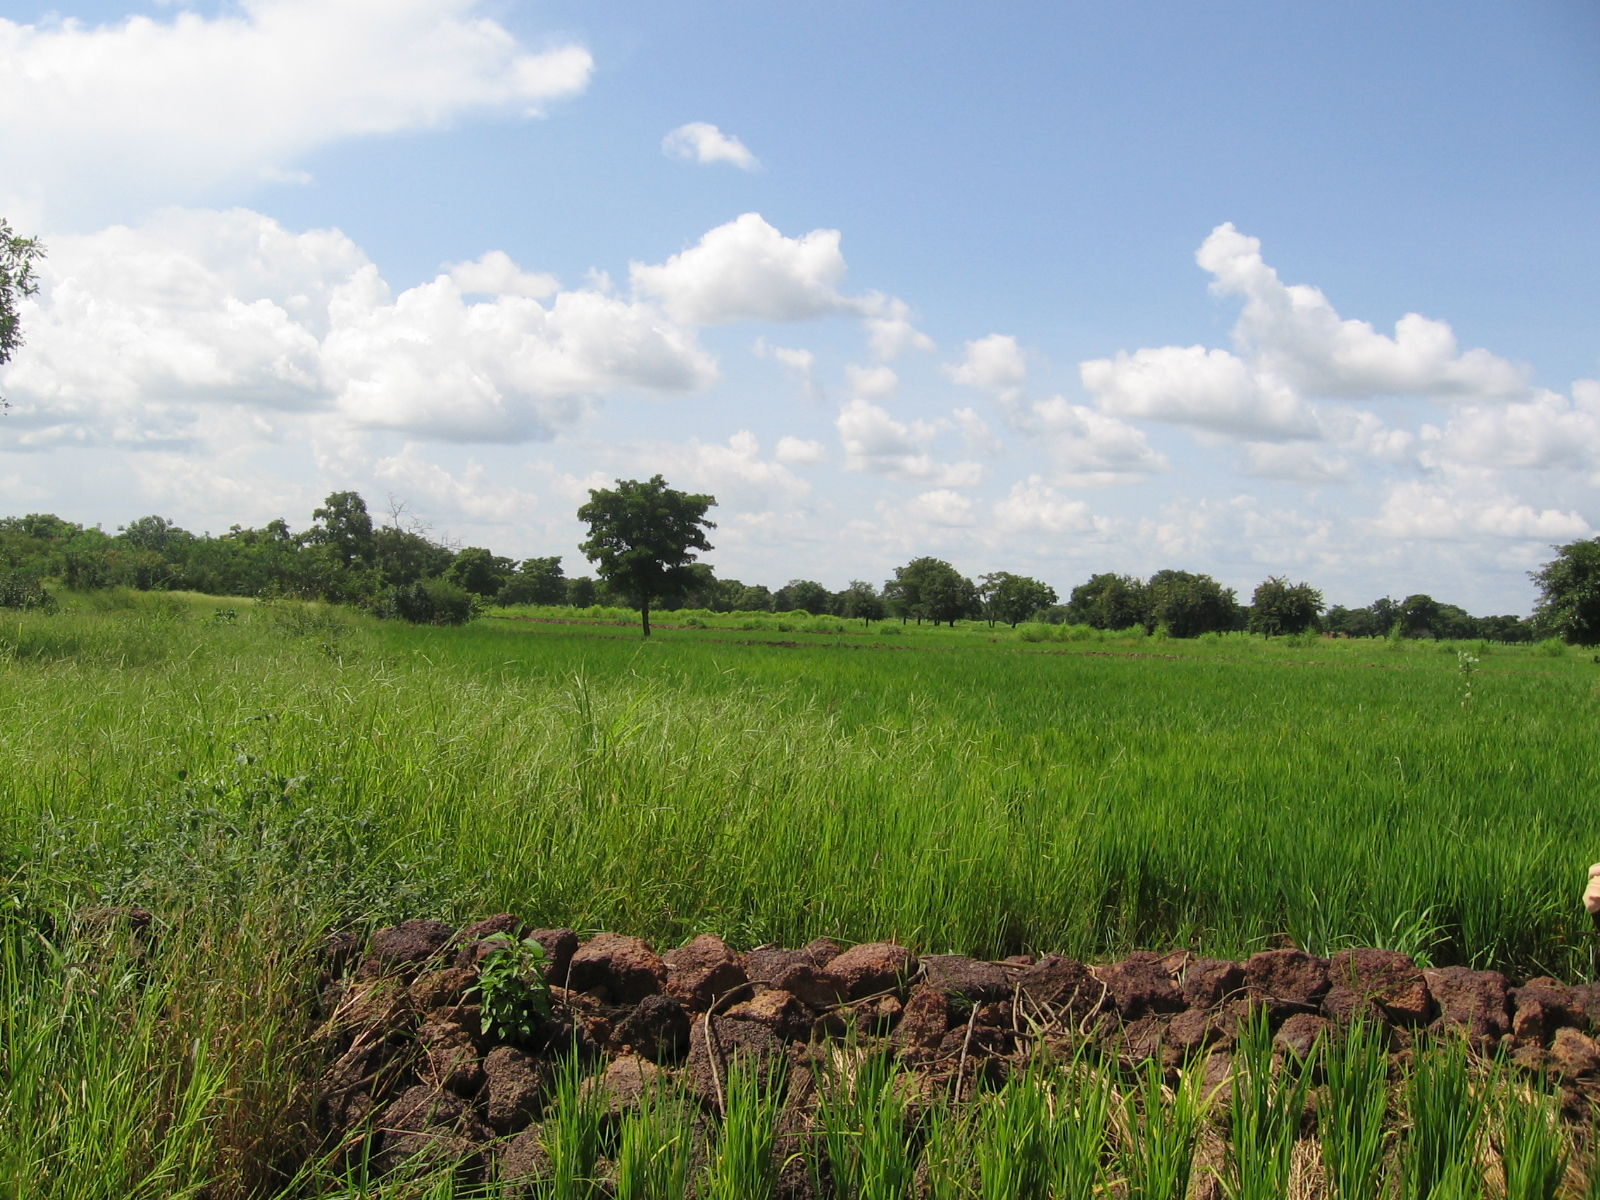 Permeable rock dam and rice fields in Burkina Faso - Photo by Brent Simpson